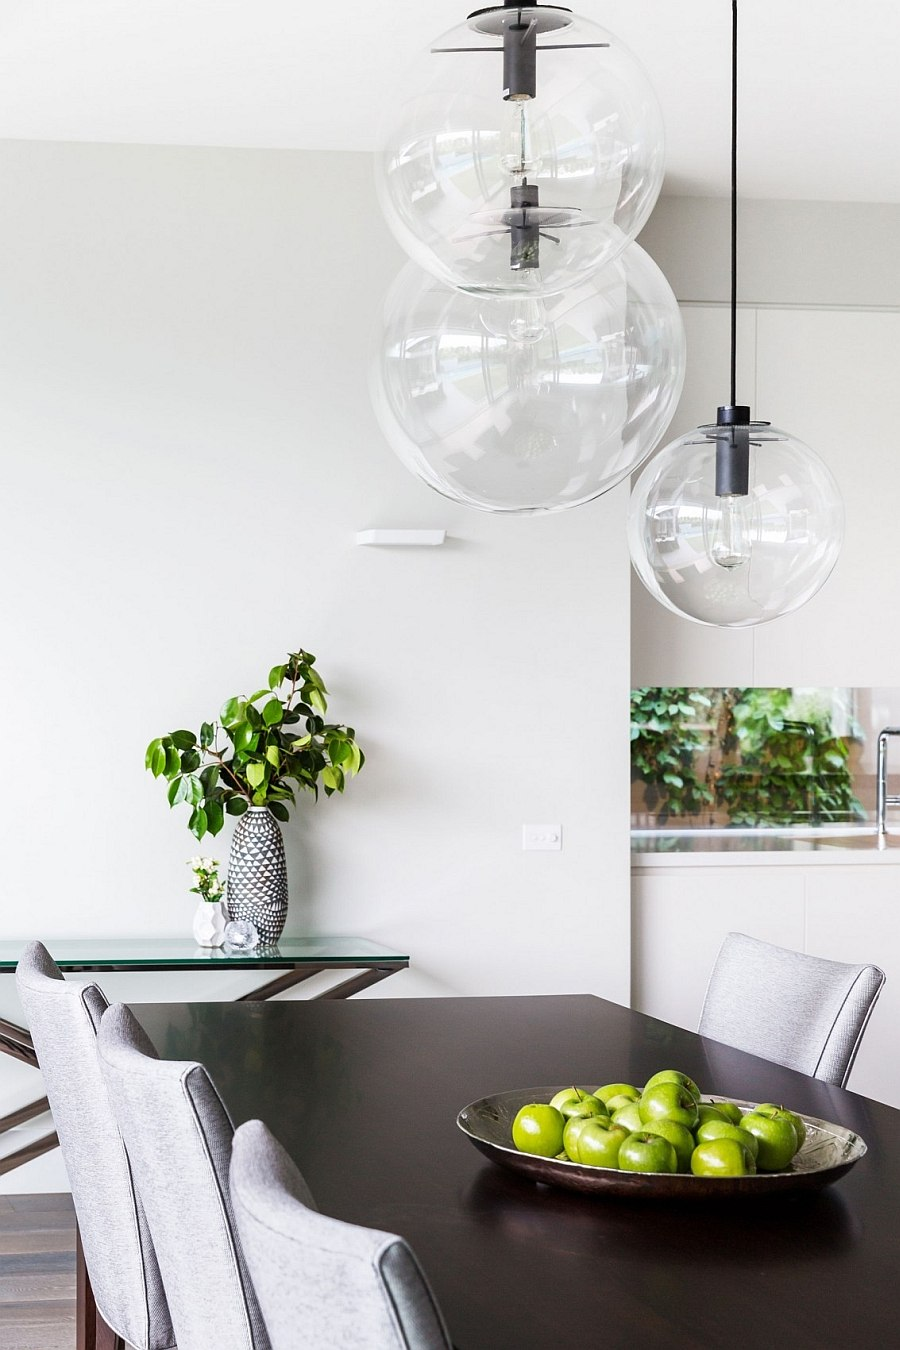 Adds pops of green to the kitchen in a natural fashion